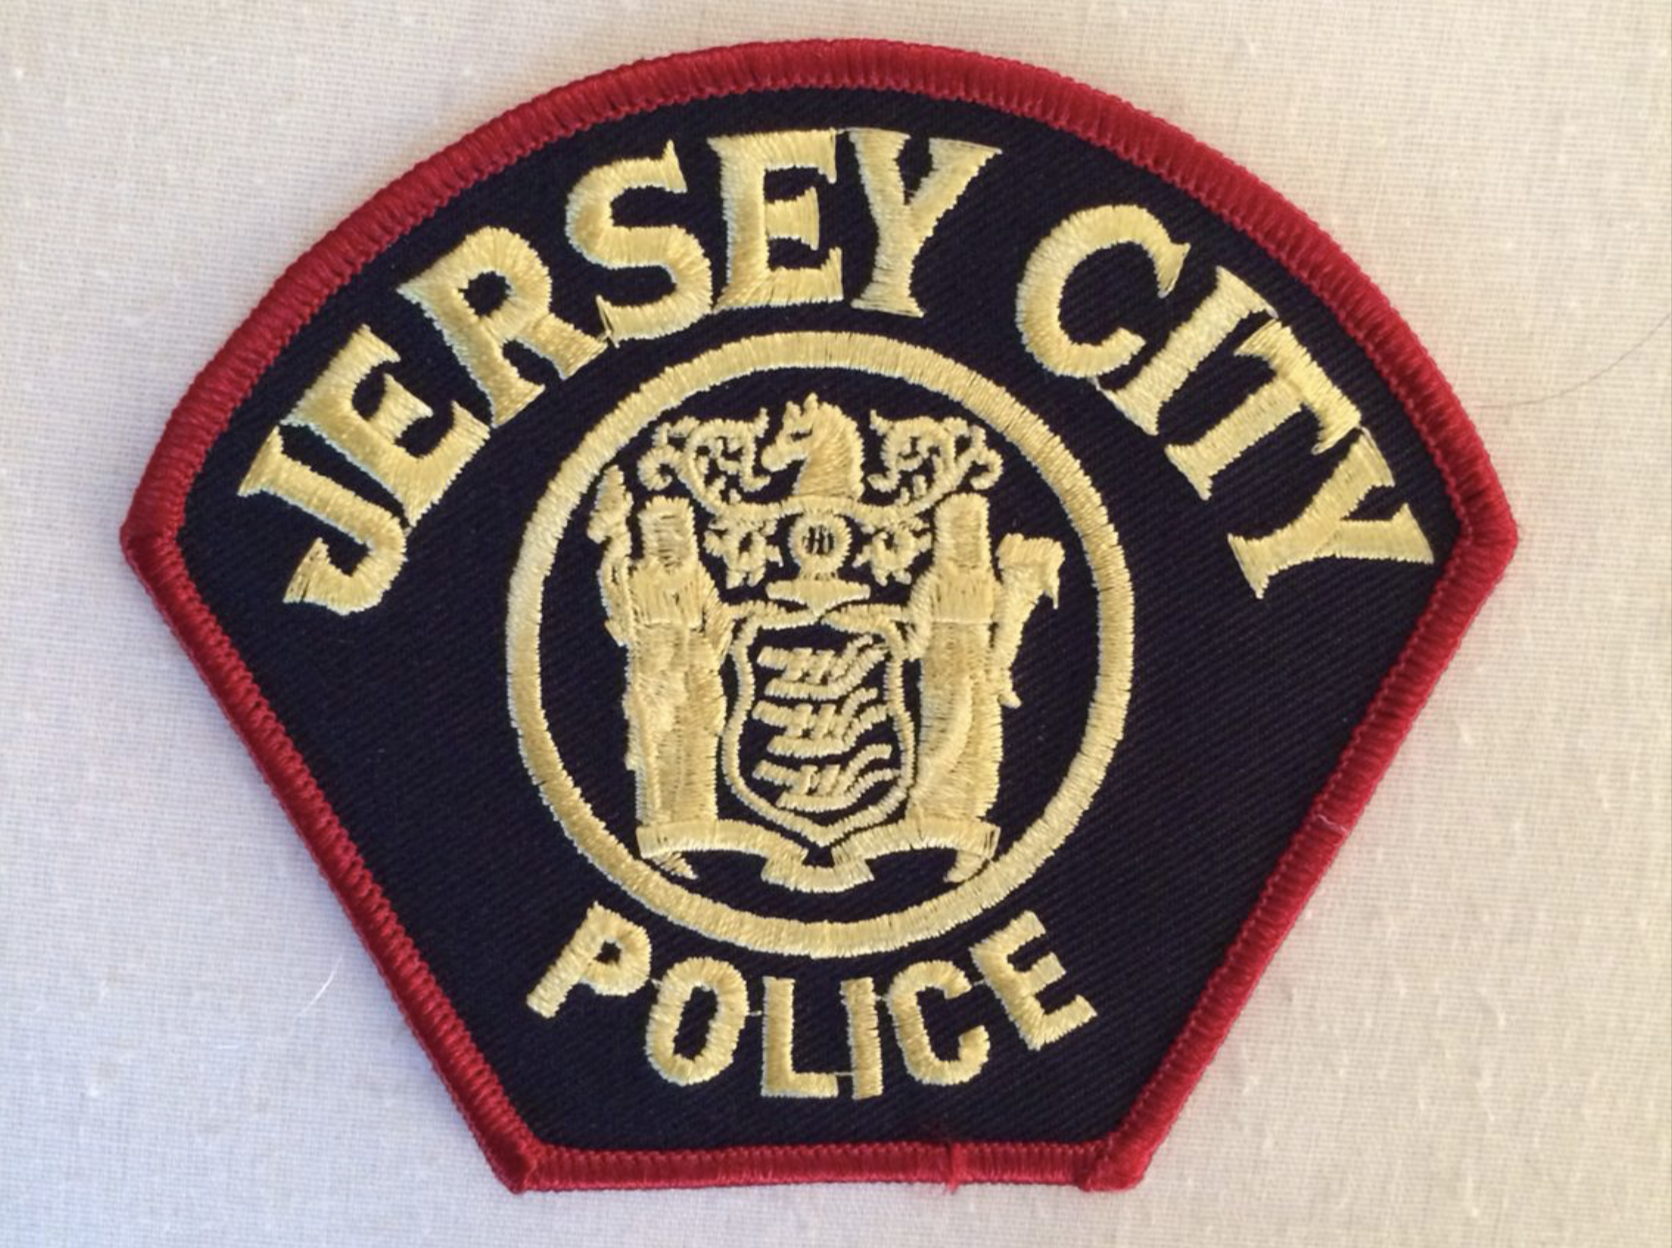 NJ2AS filing complaint against Jersey City Police for several firearm law violations